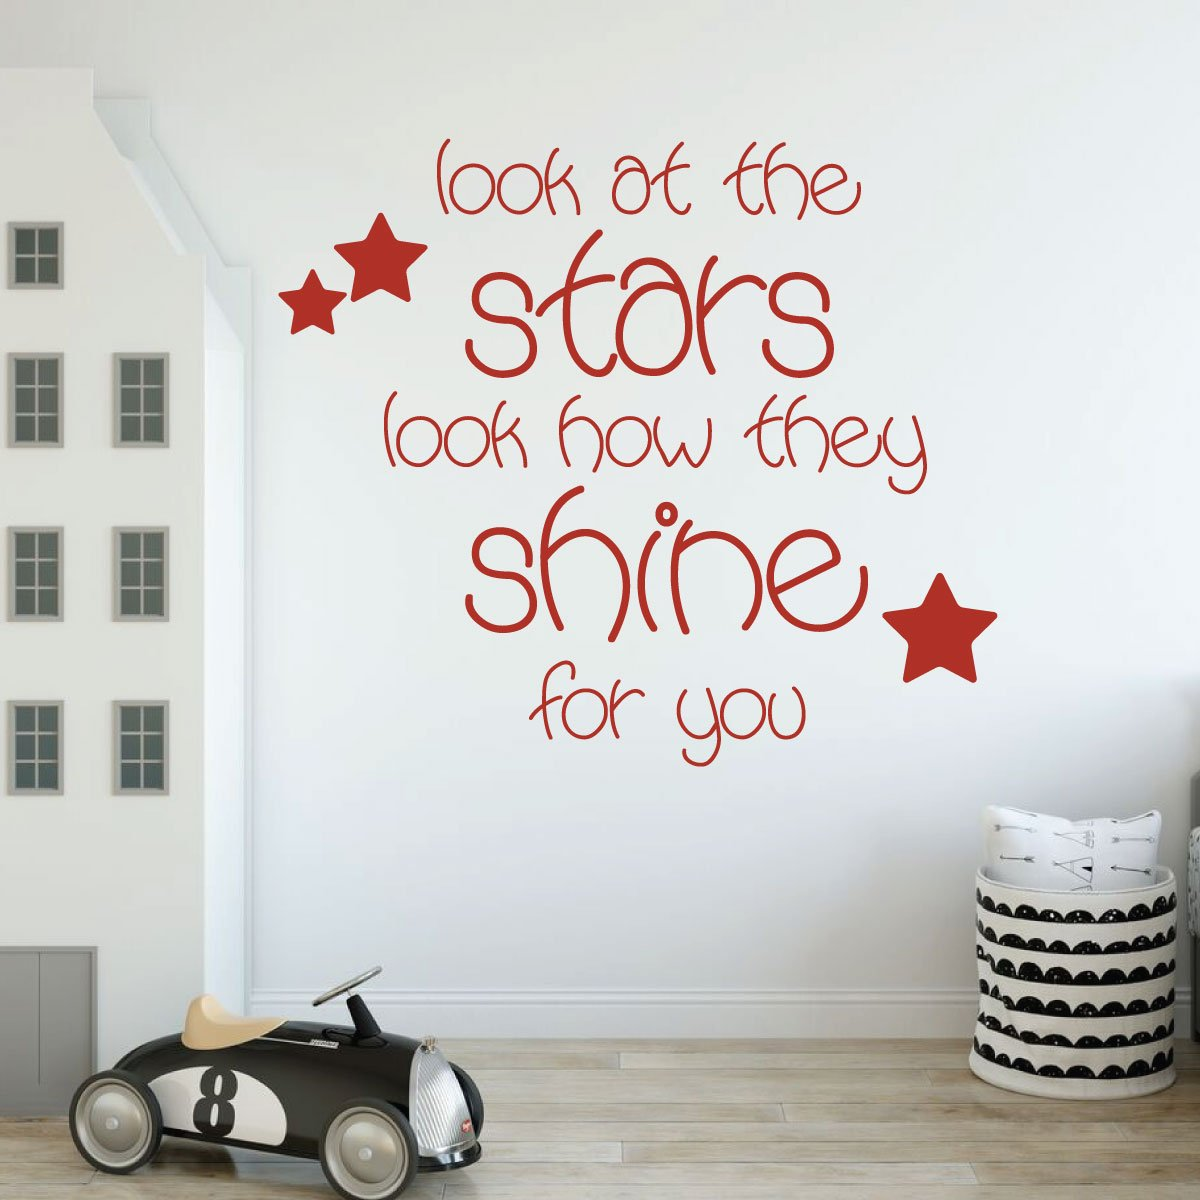 Look At The Stars Quote Lettering Childrens Room Vinyl Wall Decal Decor